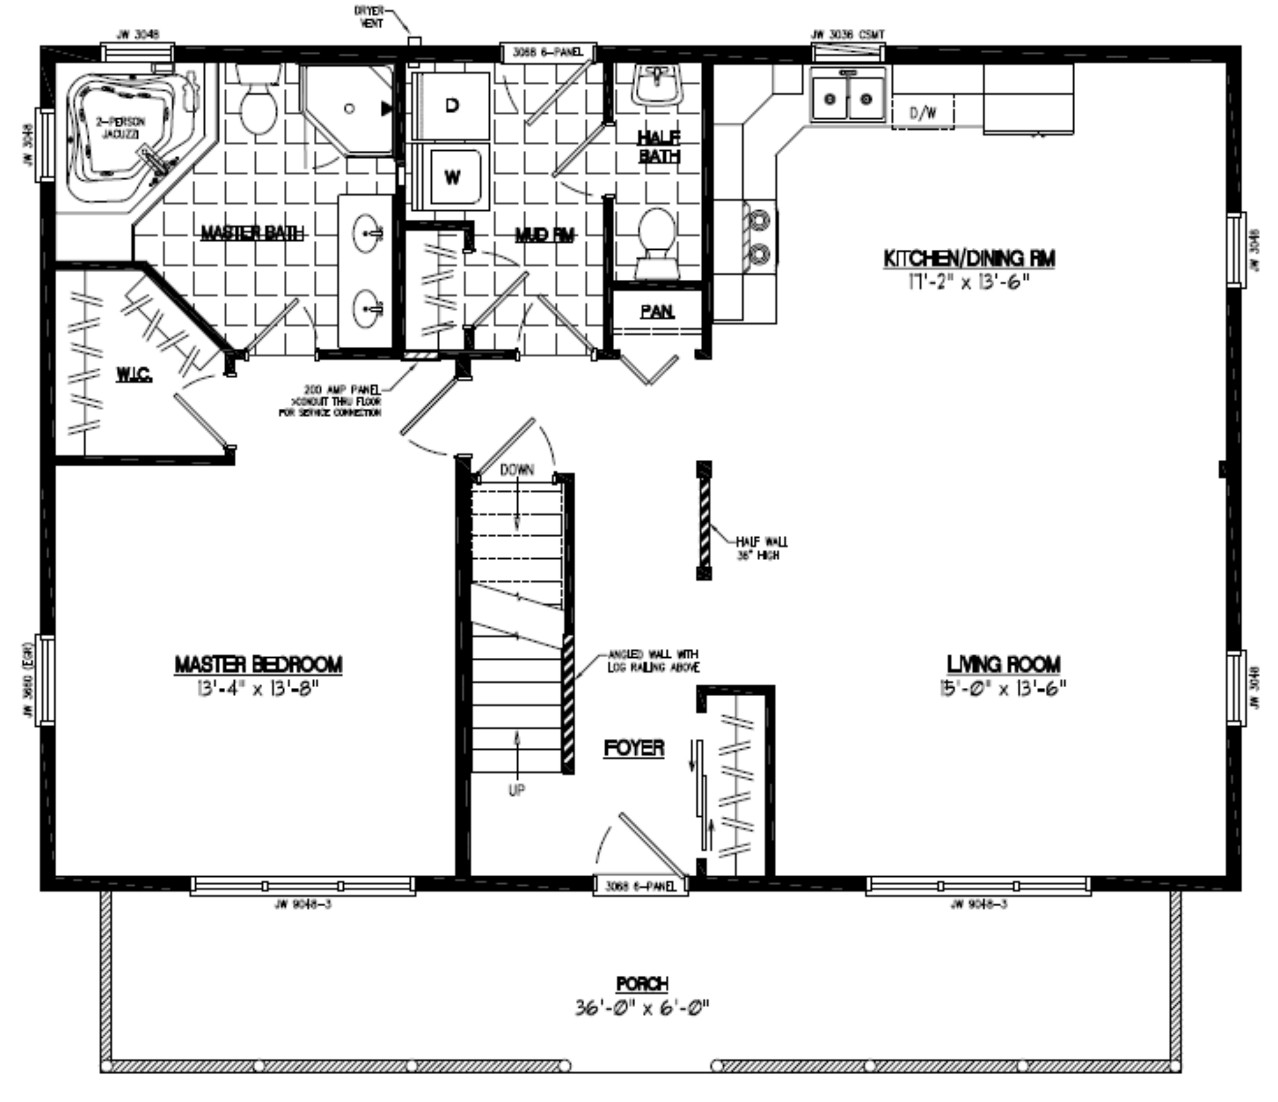 Certified Homes | Mountaineer Certified Home Floor Plans on 26x28 floor plans, 24x42 floor plans, 24 x 40 house floor plans, modular home floor plans, 24x30 floor plans, 18x24 floor plans, 24x36 floor plans, 22x30 floor plans, 28x40 floor plans, 40 x 50 floor plans, 24x40 floor plans, arcade floor plans, 11x17 floor plans, 26x36 floor plans, 26x44 floor plans,